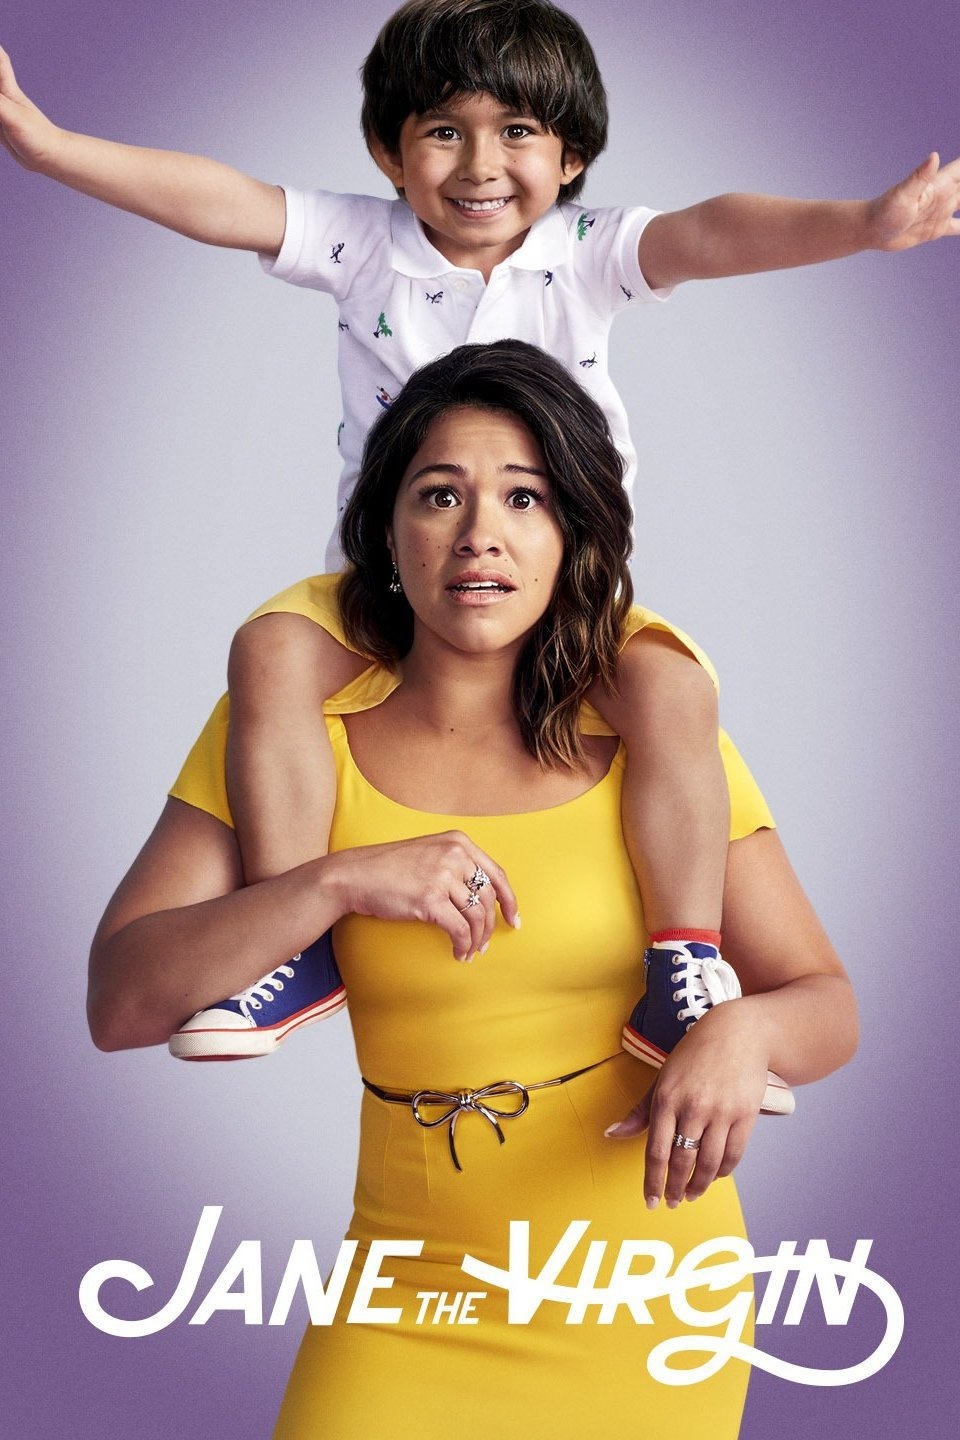 Image result for jane the virgin